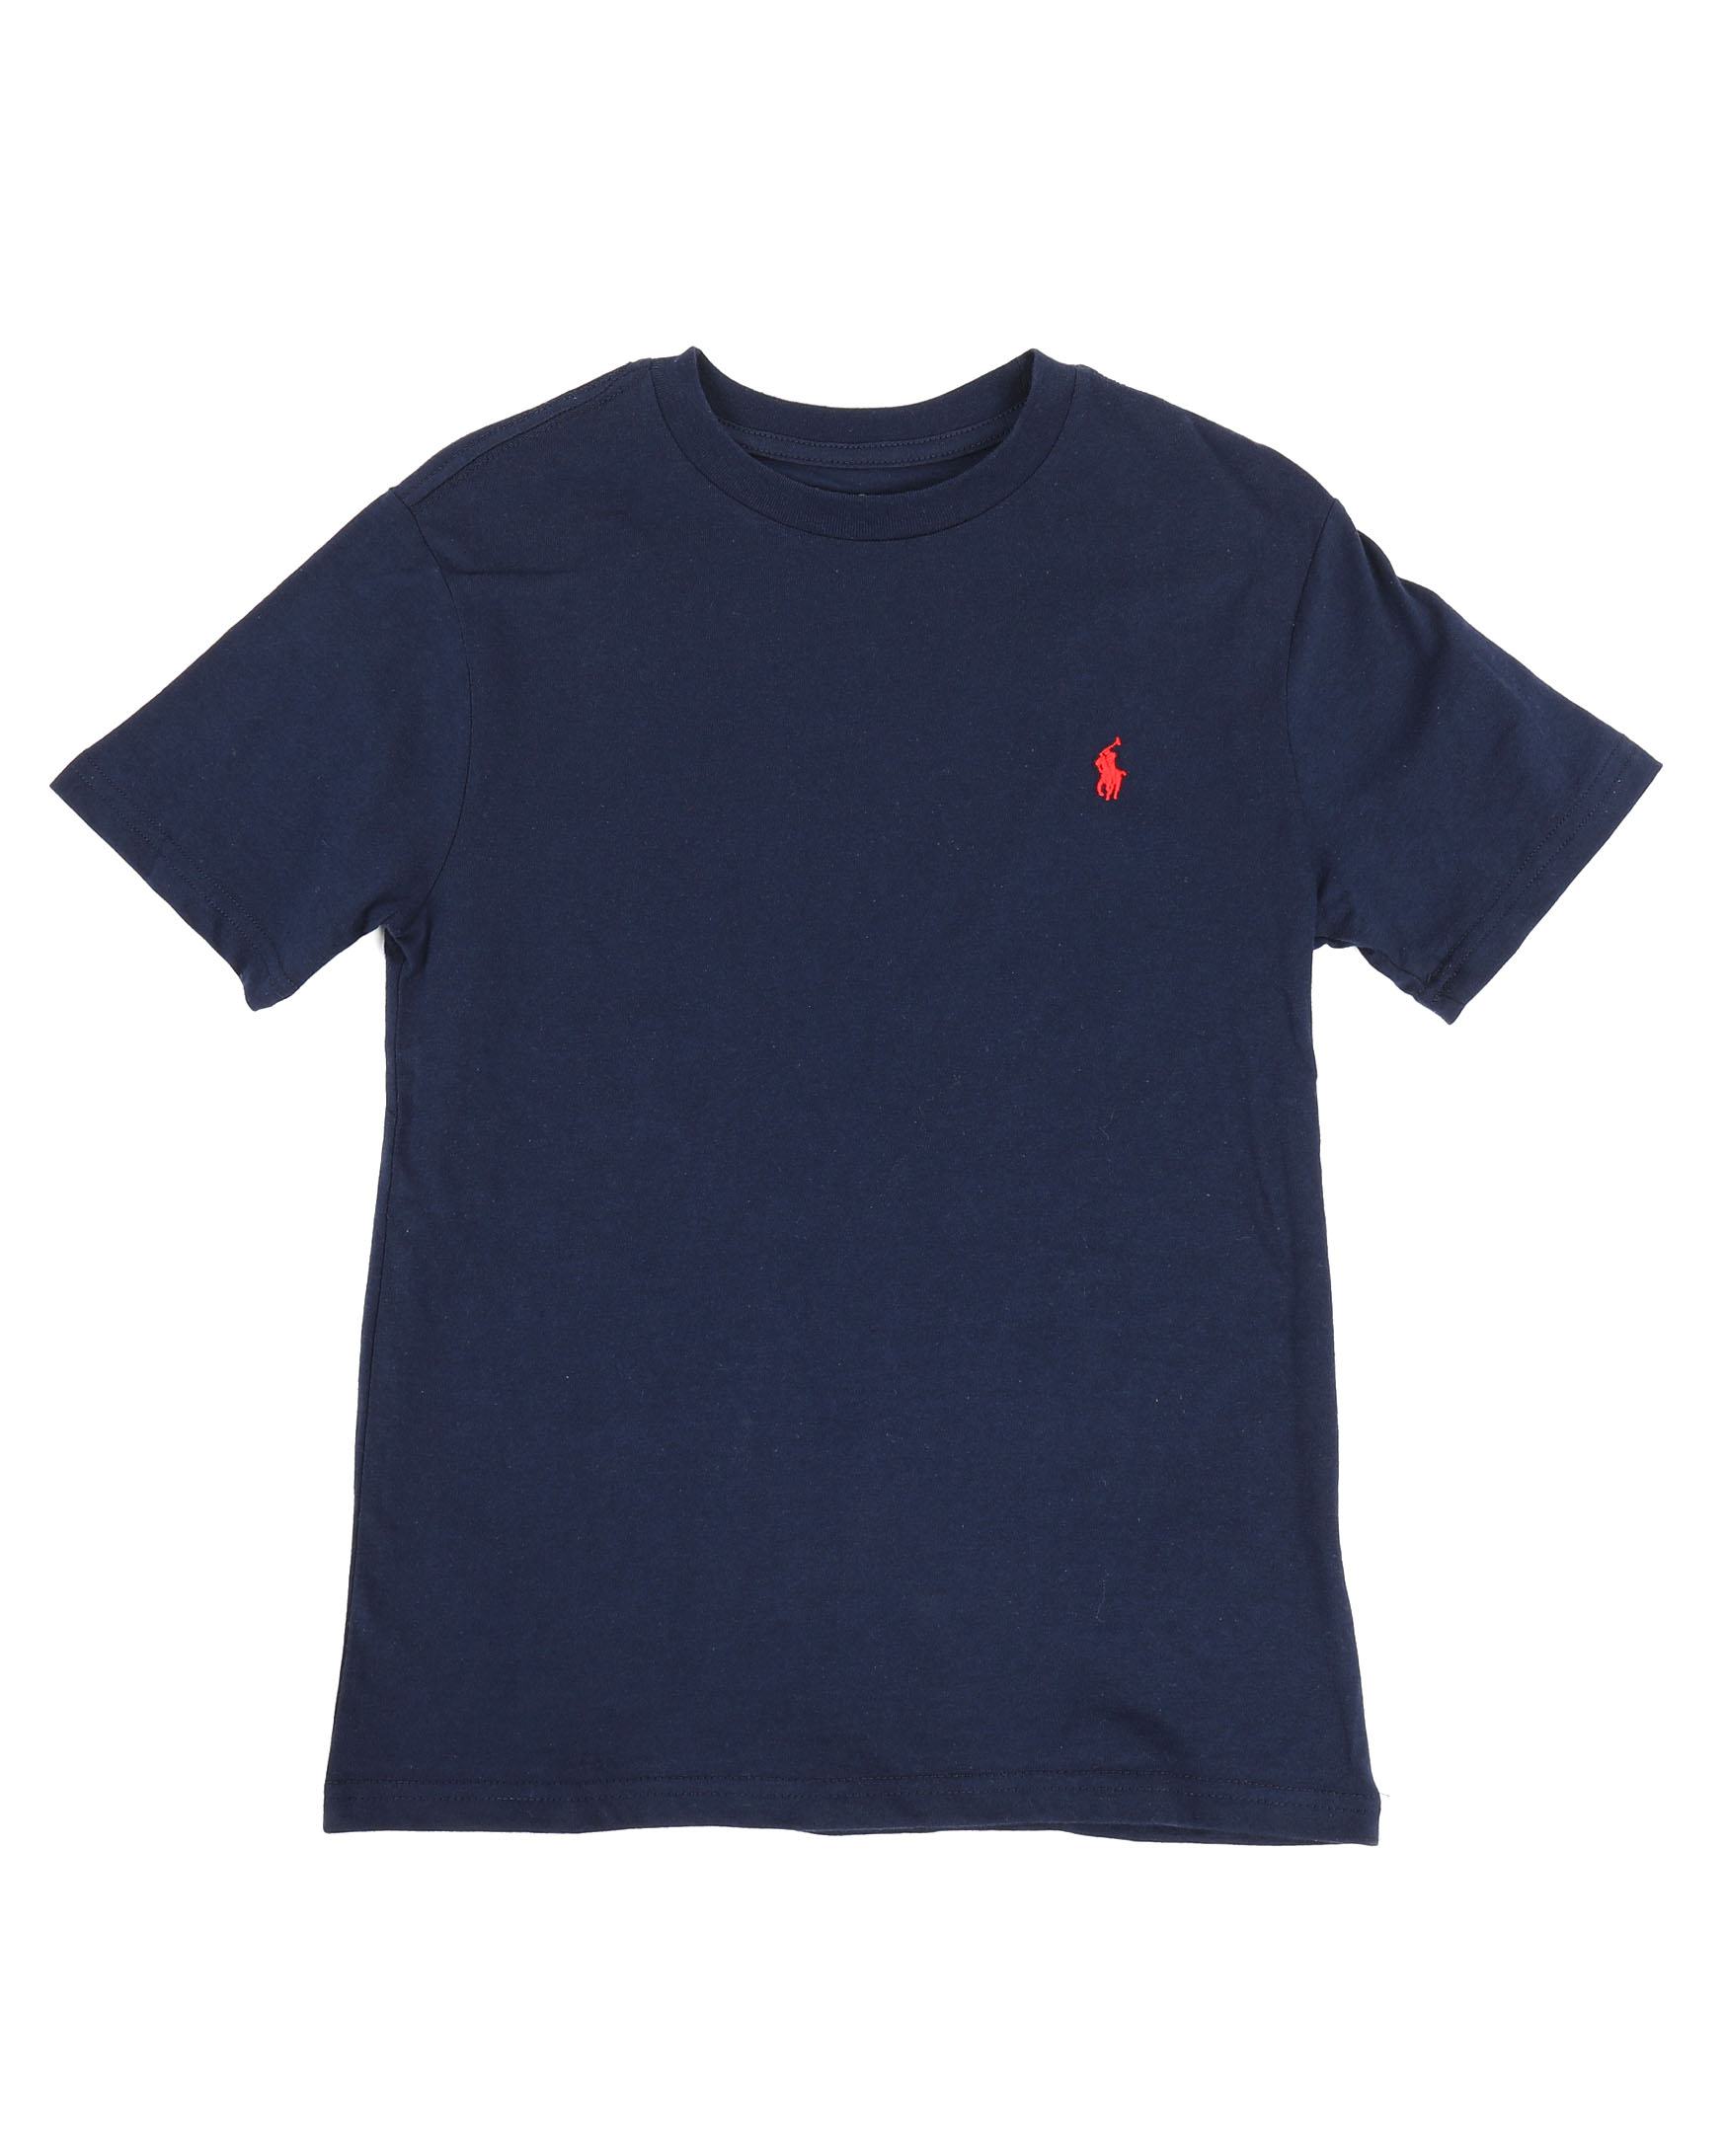 20Boys Tops Buy Jersey Tee8 From Polo 301 LaurenFind Ralph 3T1ulFKJc